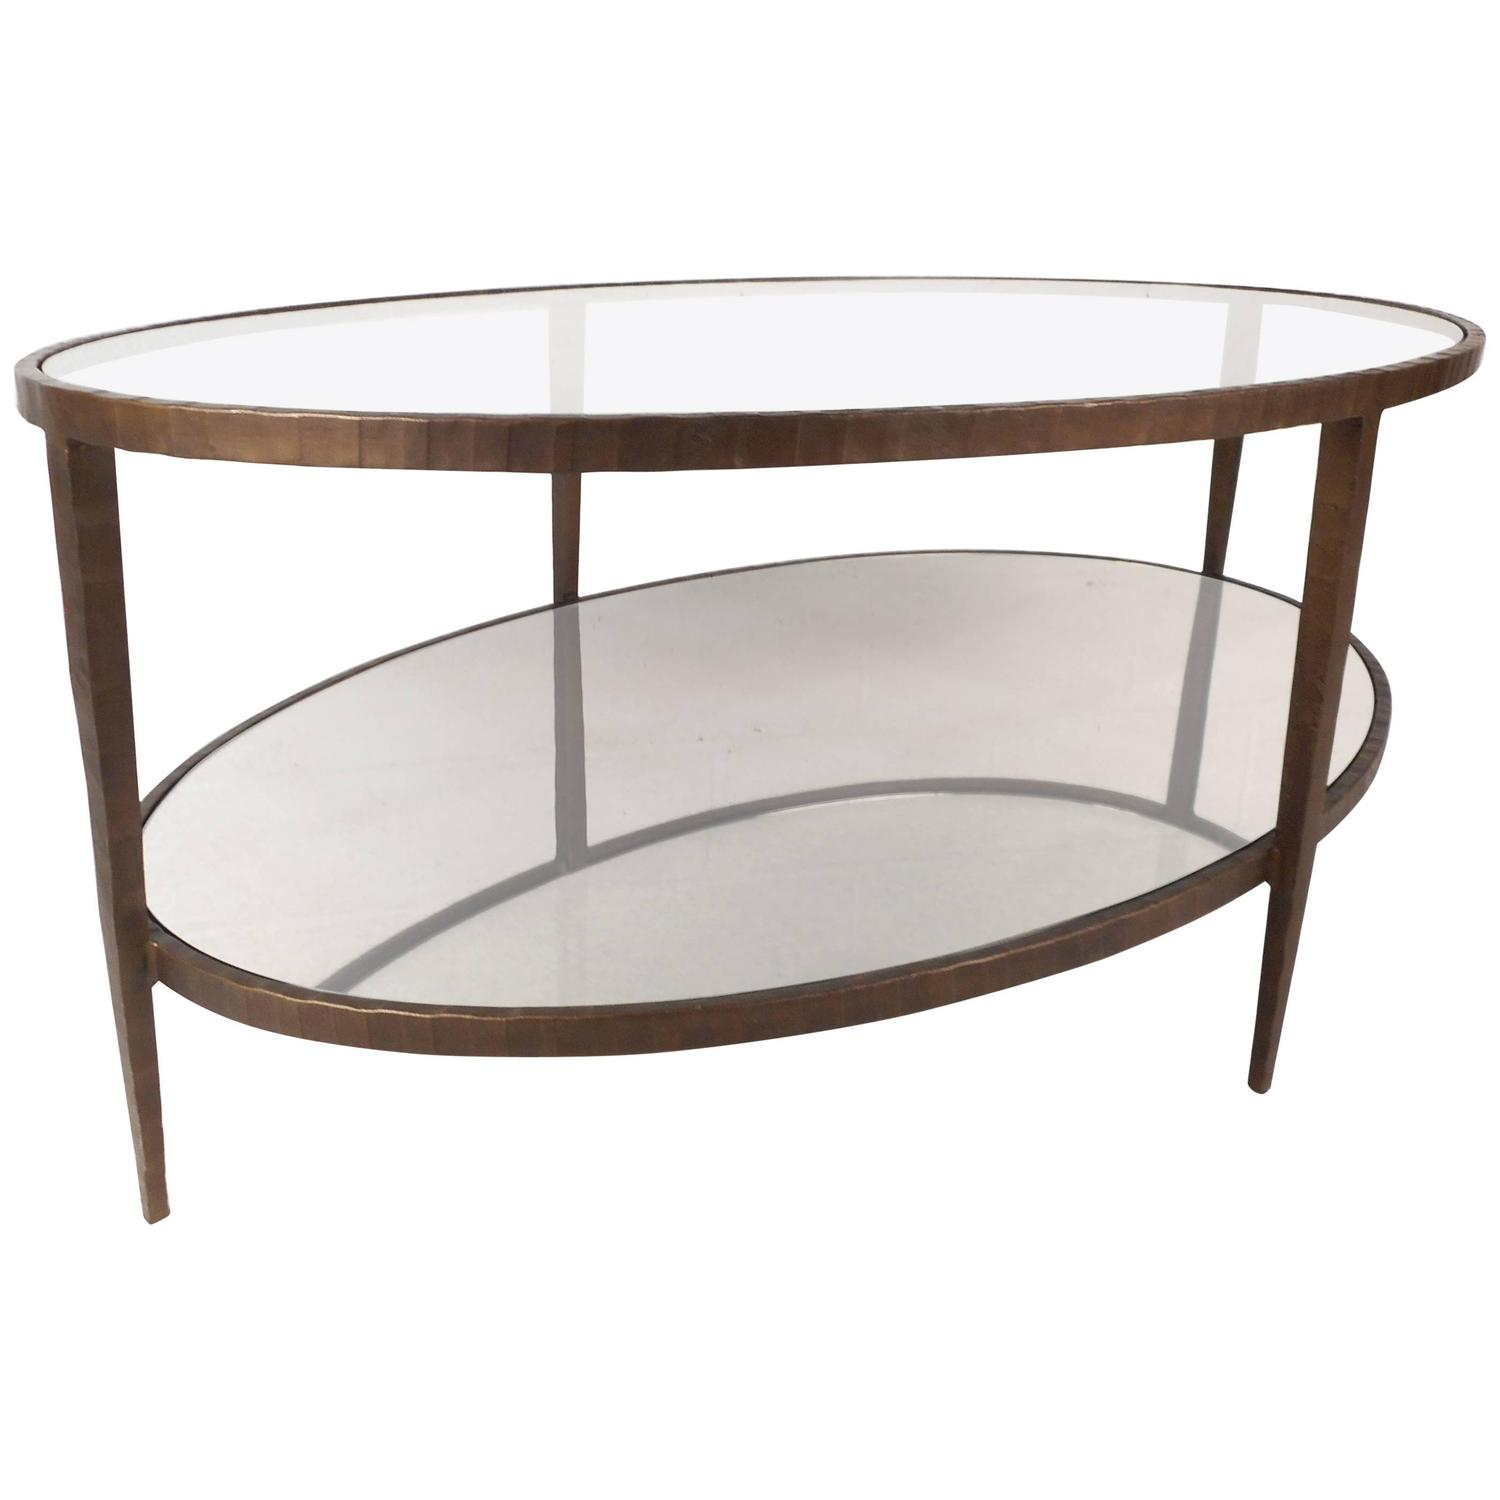 Oval Coffee Table With Metal Legs: Mid-Century Modern Oval Two-Tier Textured Metal Coffee